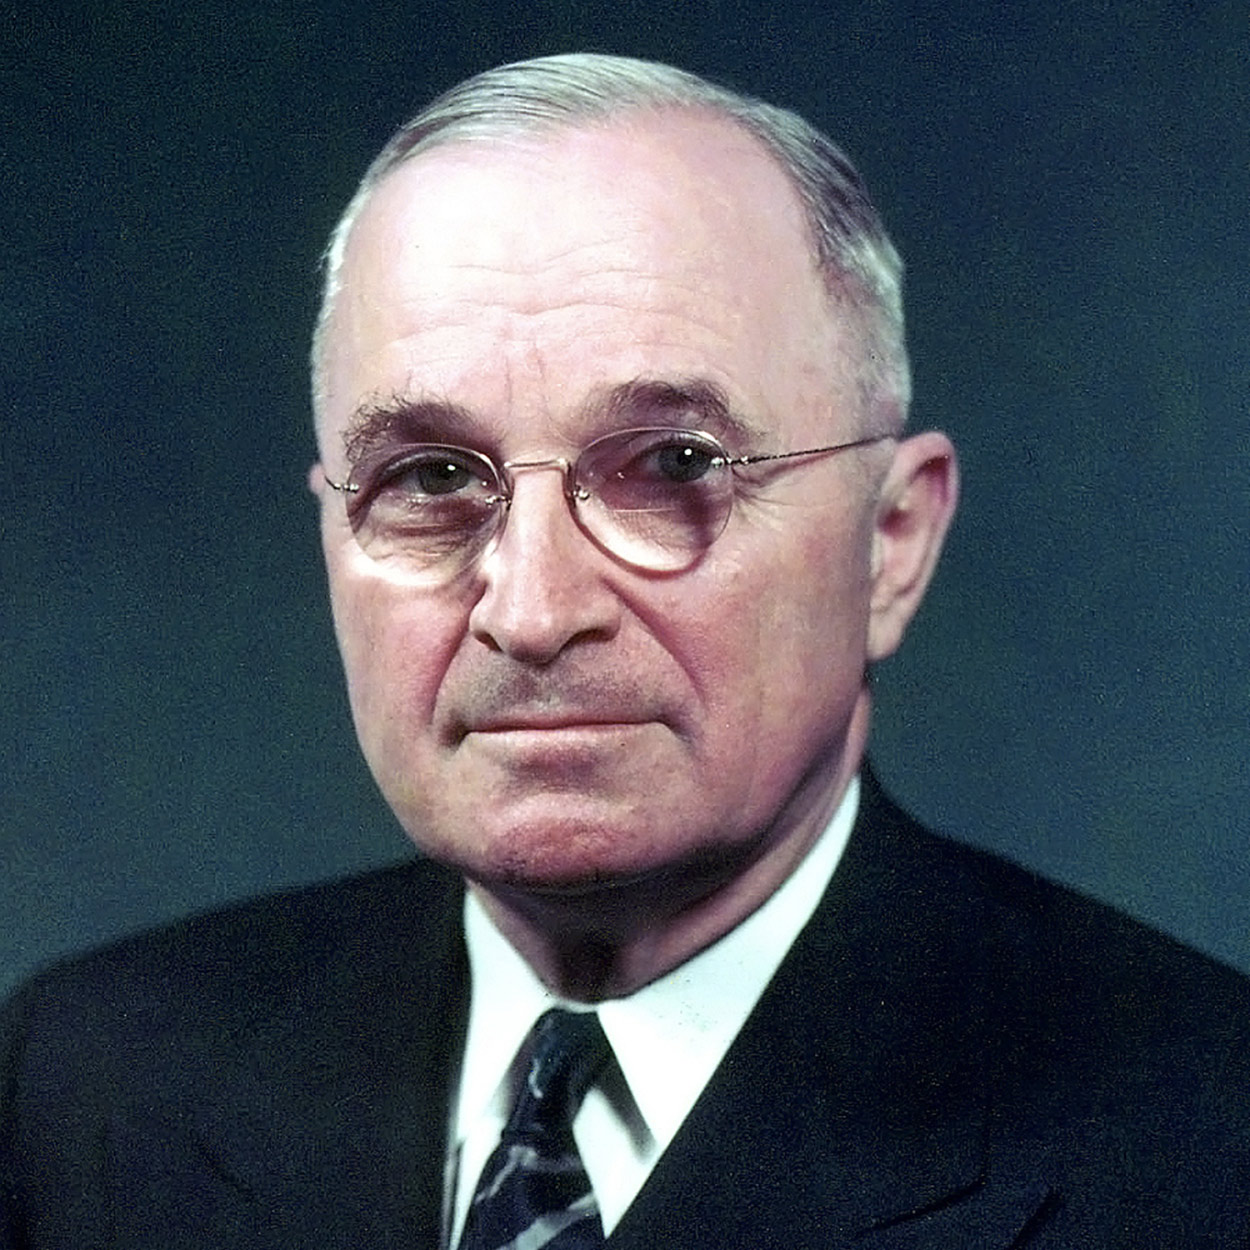 Portrait of Harry S. Truman, the 33rd President of the United States